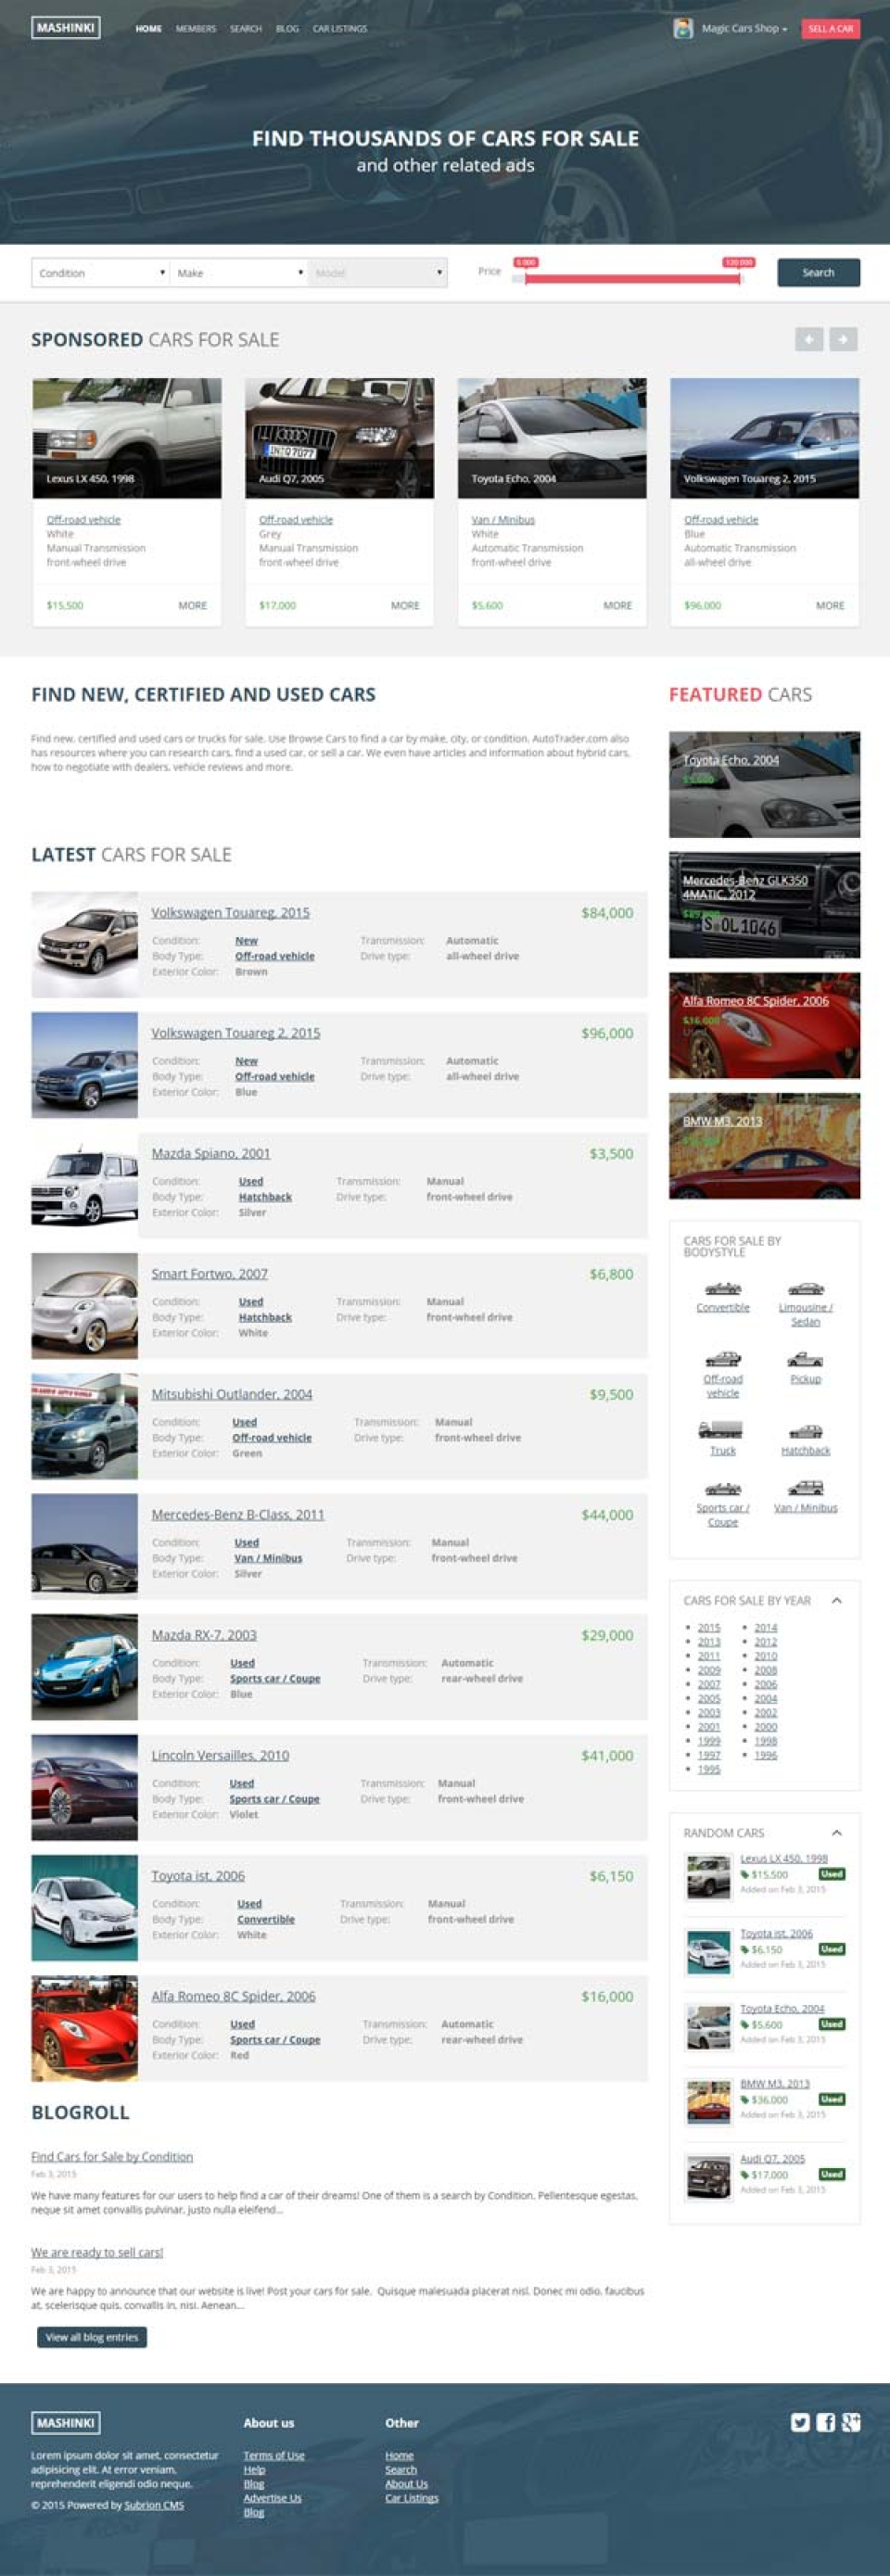 Subrion Auto Classified Reviews and Pricing - 2018